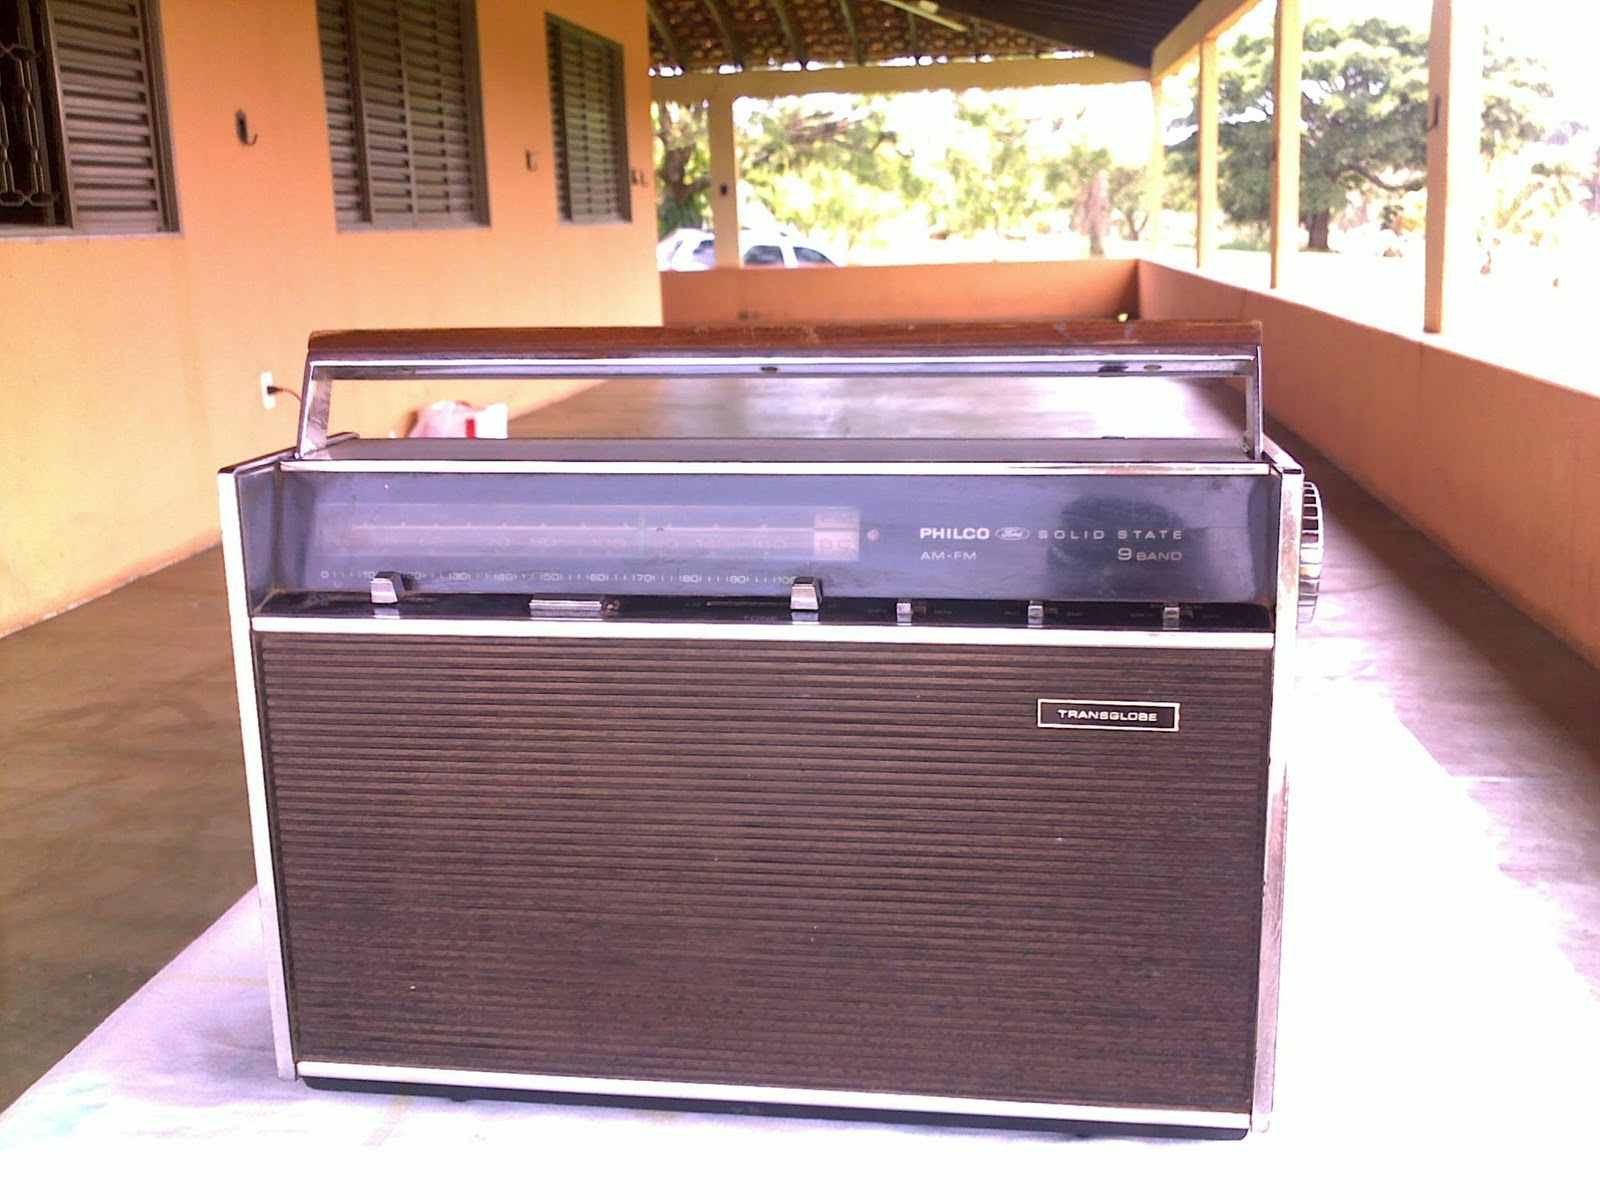 Sempre Semi-novos: ANTIGO RADIO PHILCO FORD SOLID STATE AM